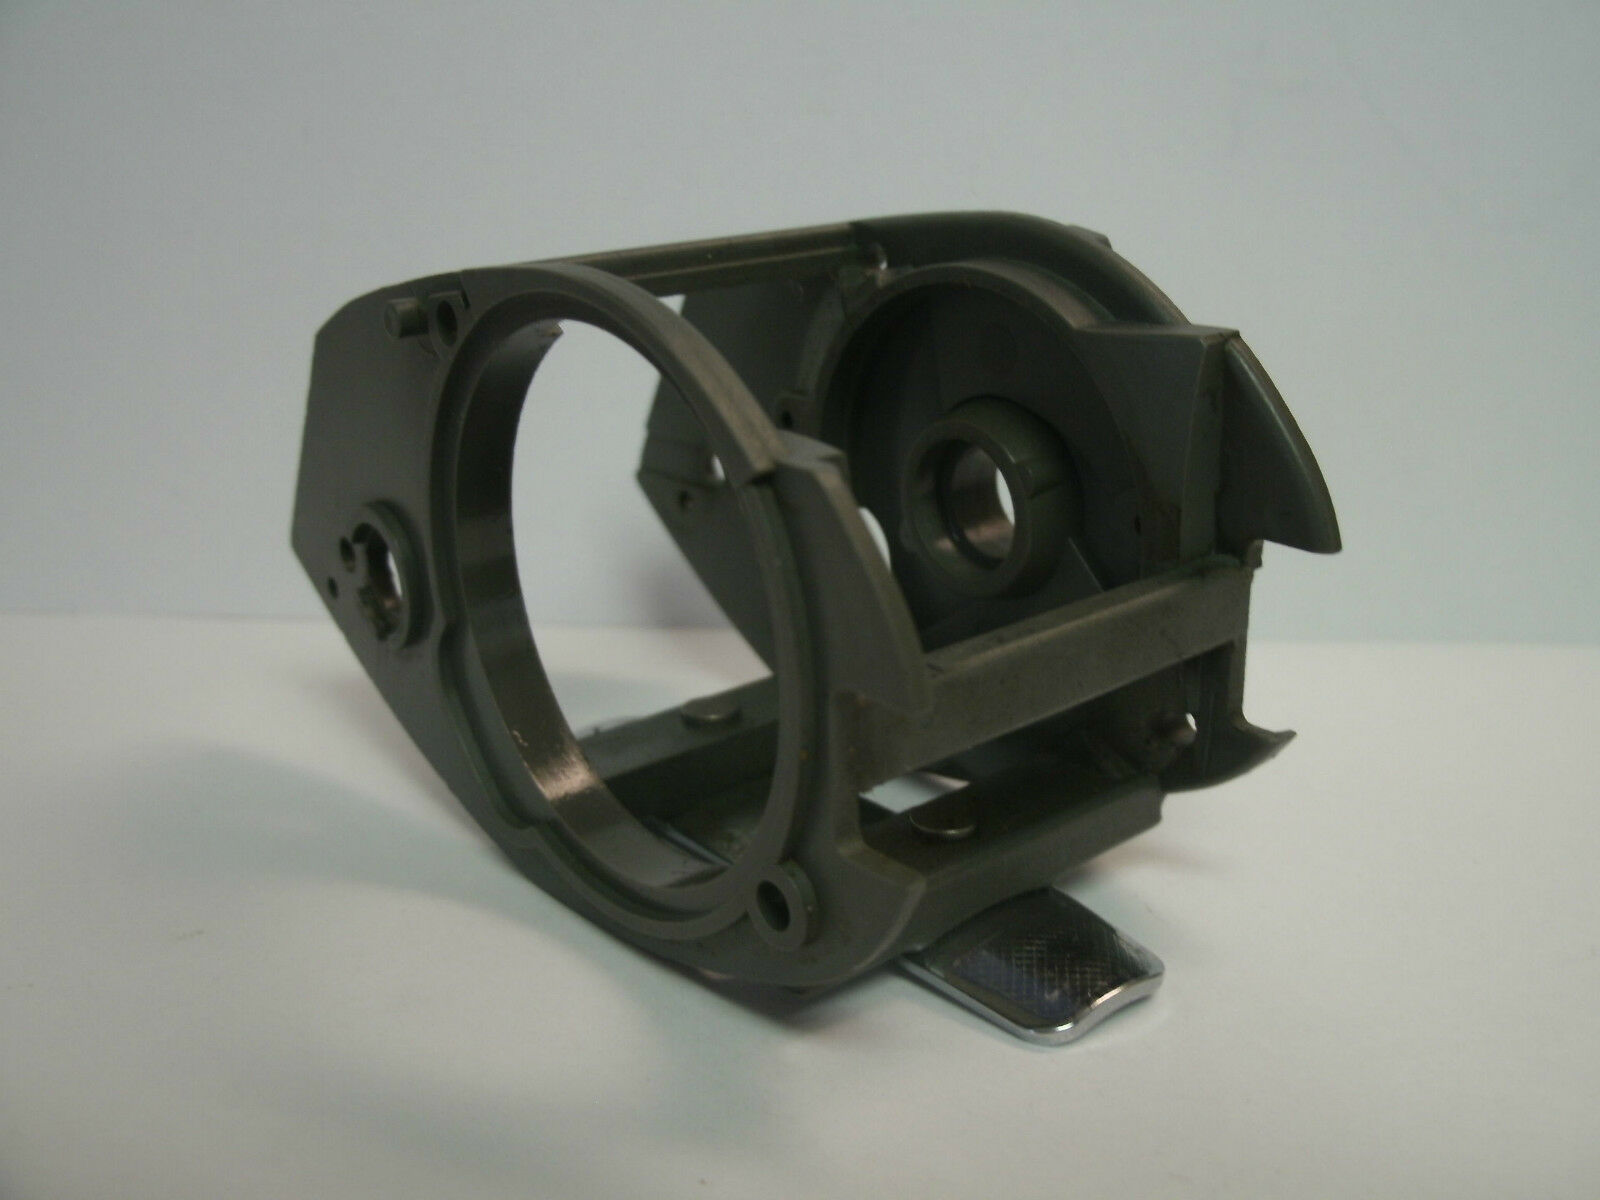 USED SHIMANO BAITCASTING REEL PART - Chronarch CH 200 - Frame Assembly